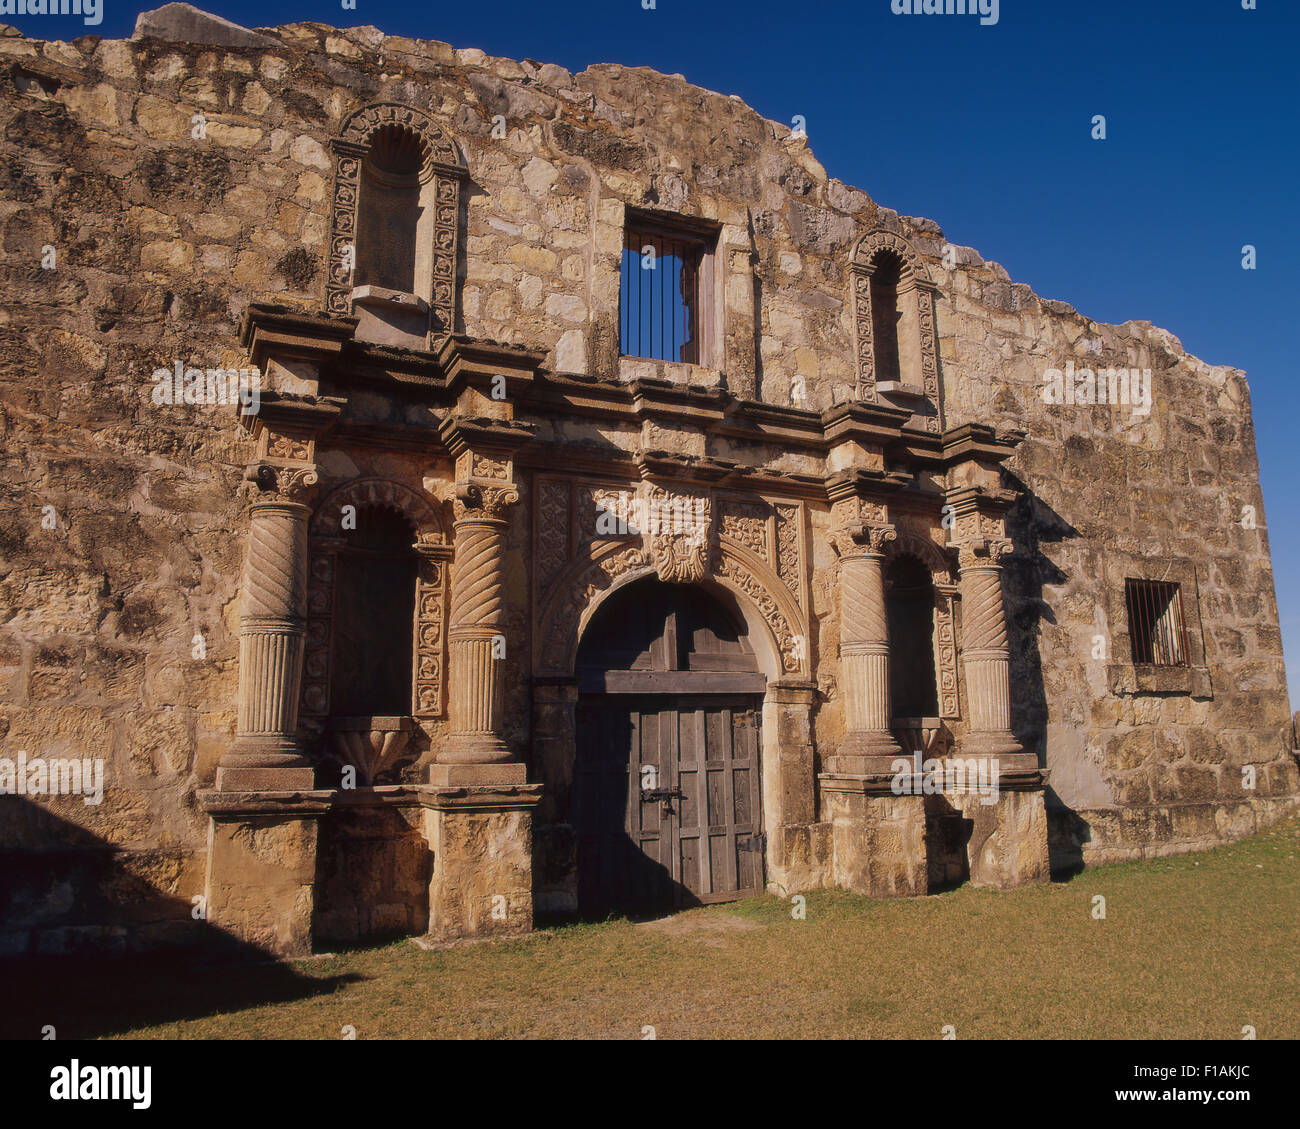 Alamo Village Stock Photo